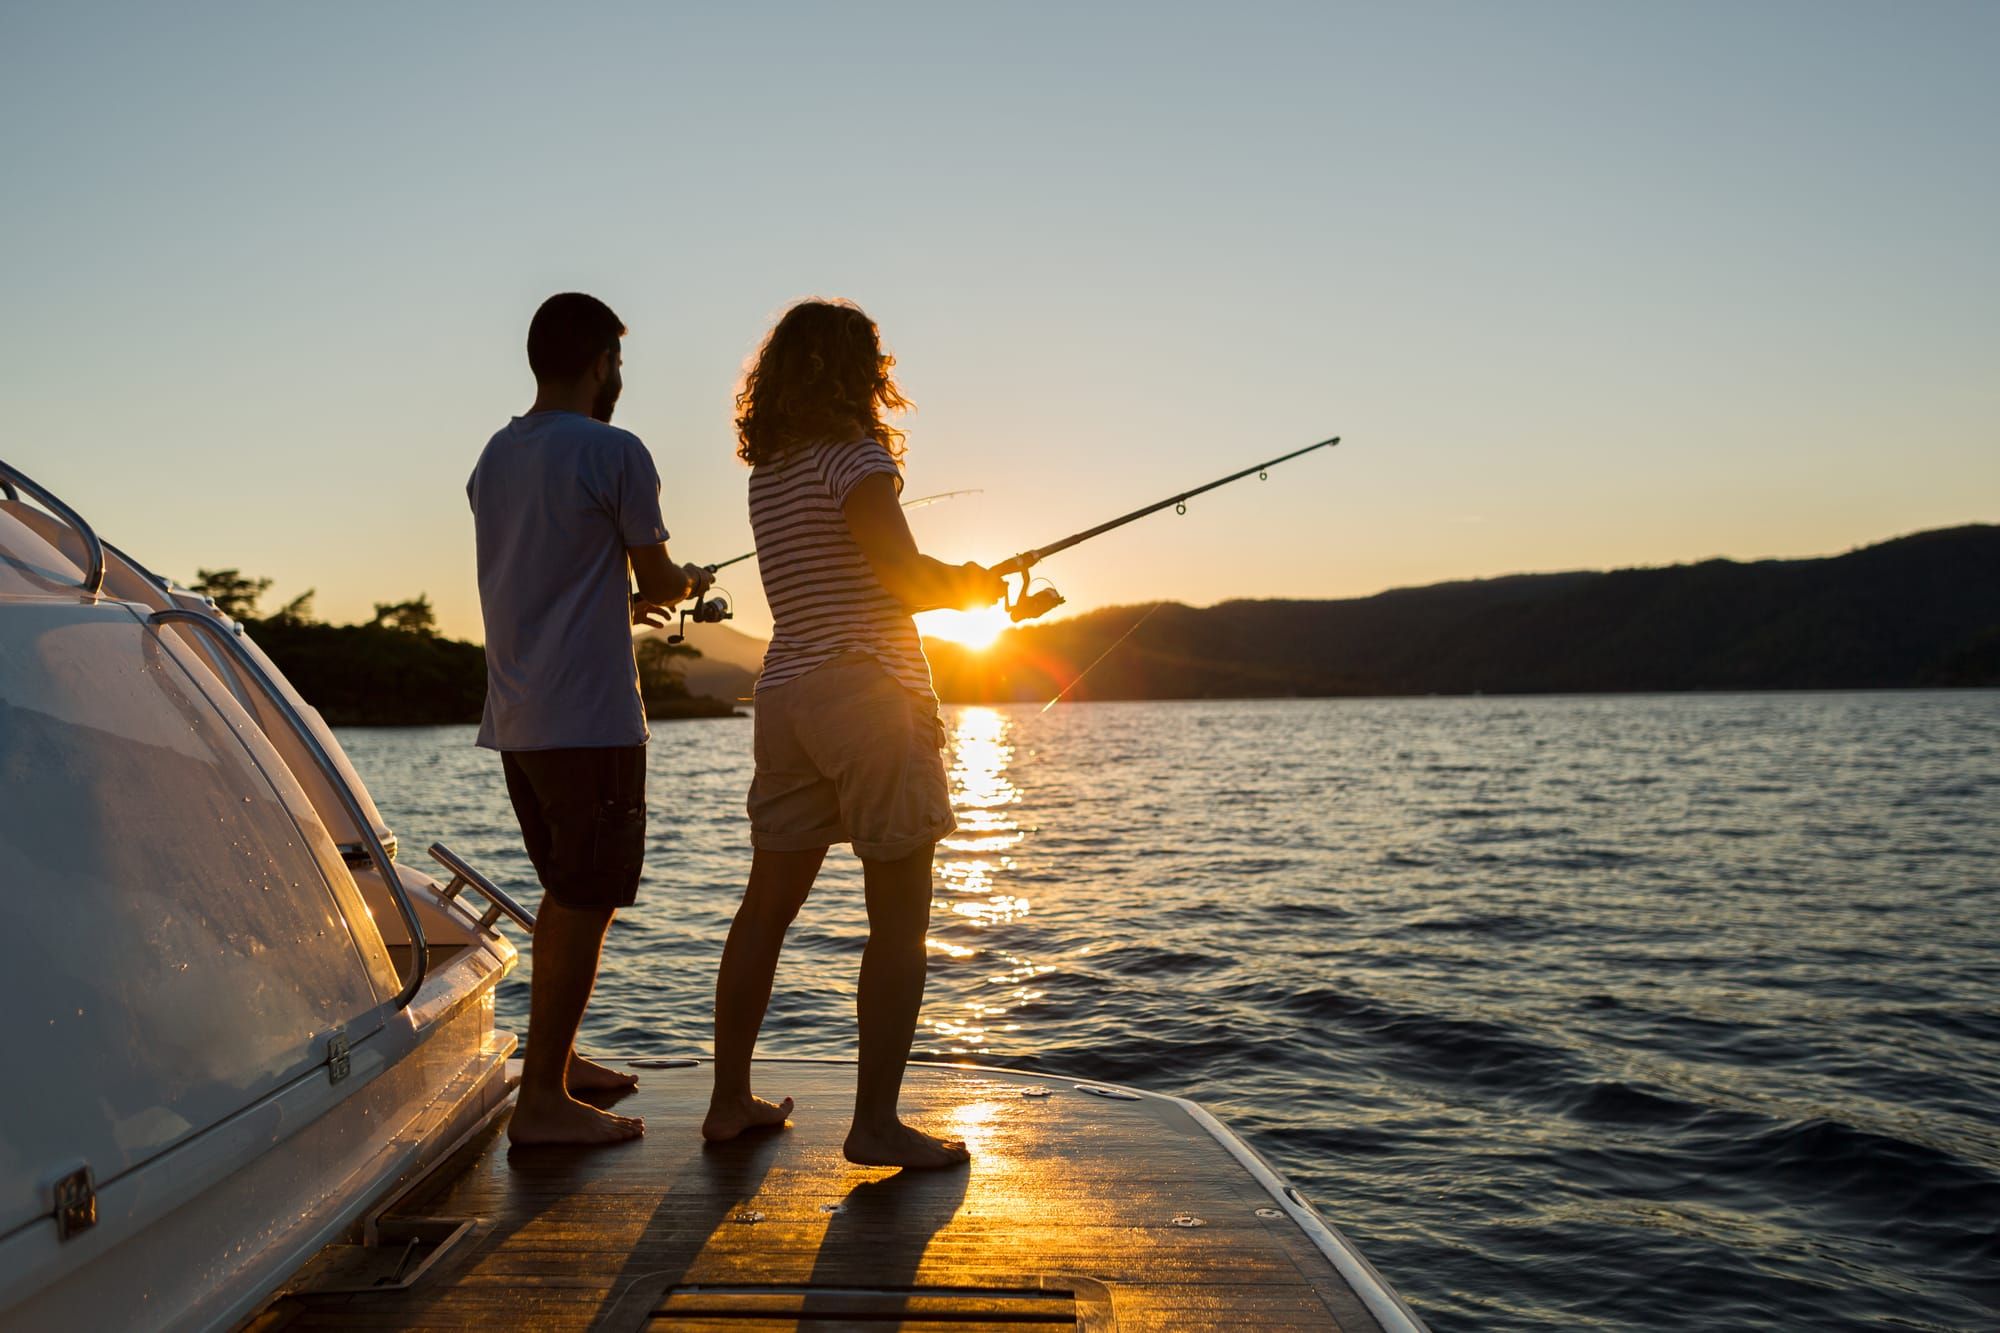 Sailing And Fishing | Cooking & Eating Out | SailingEurope Blog